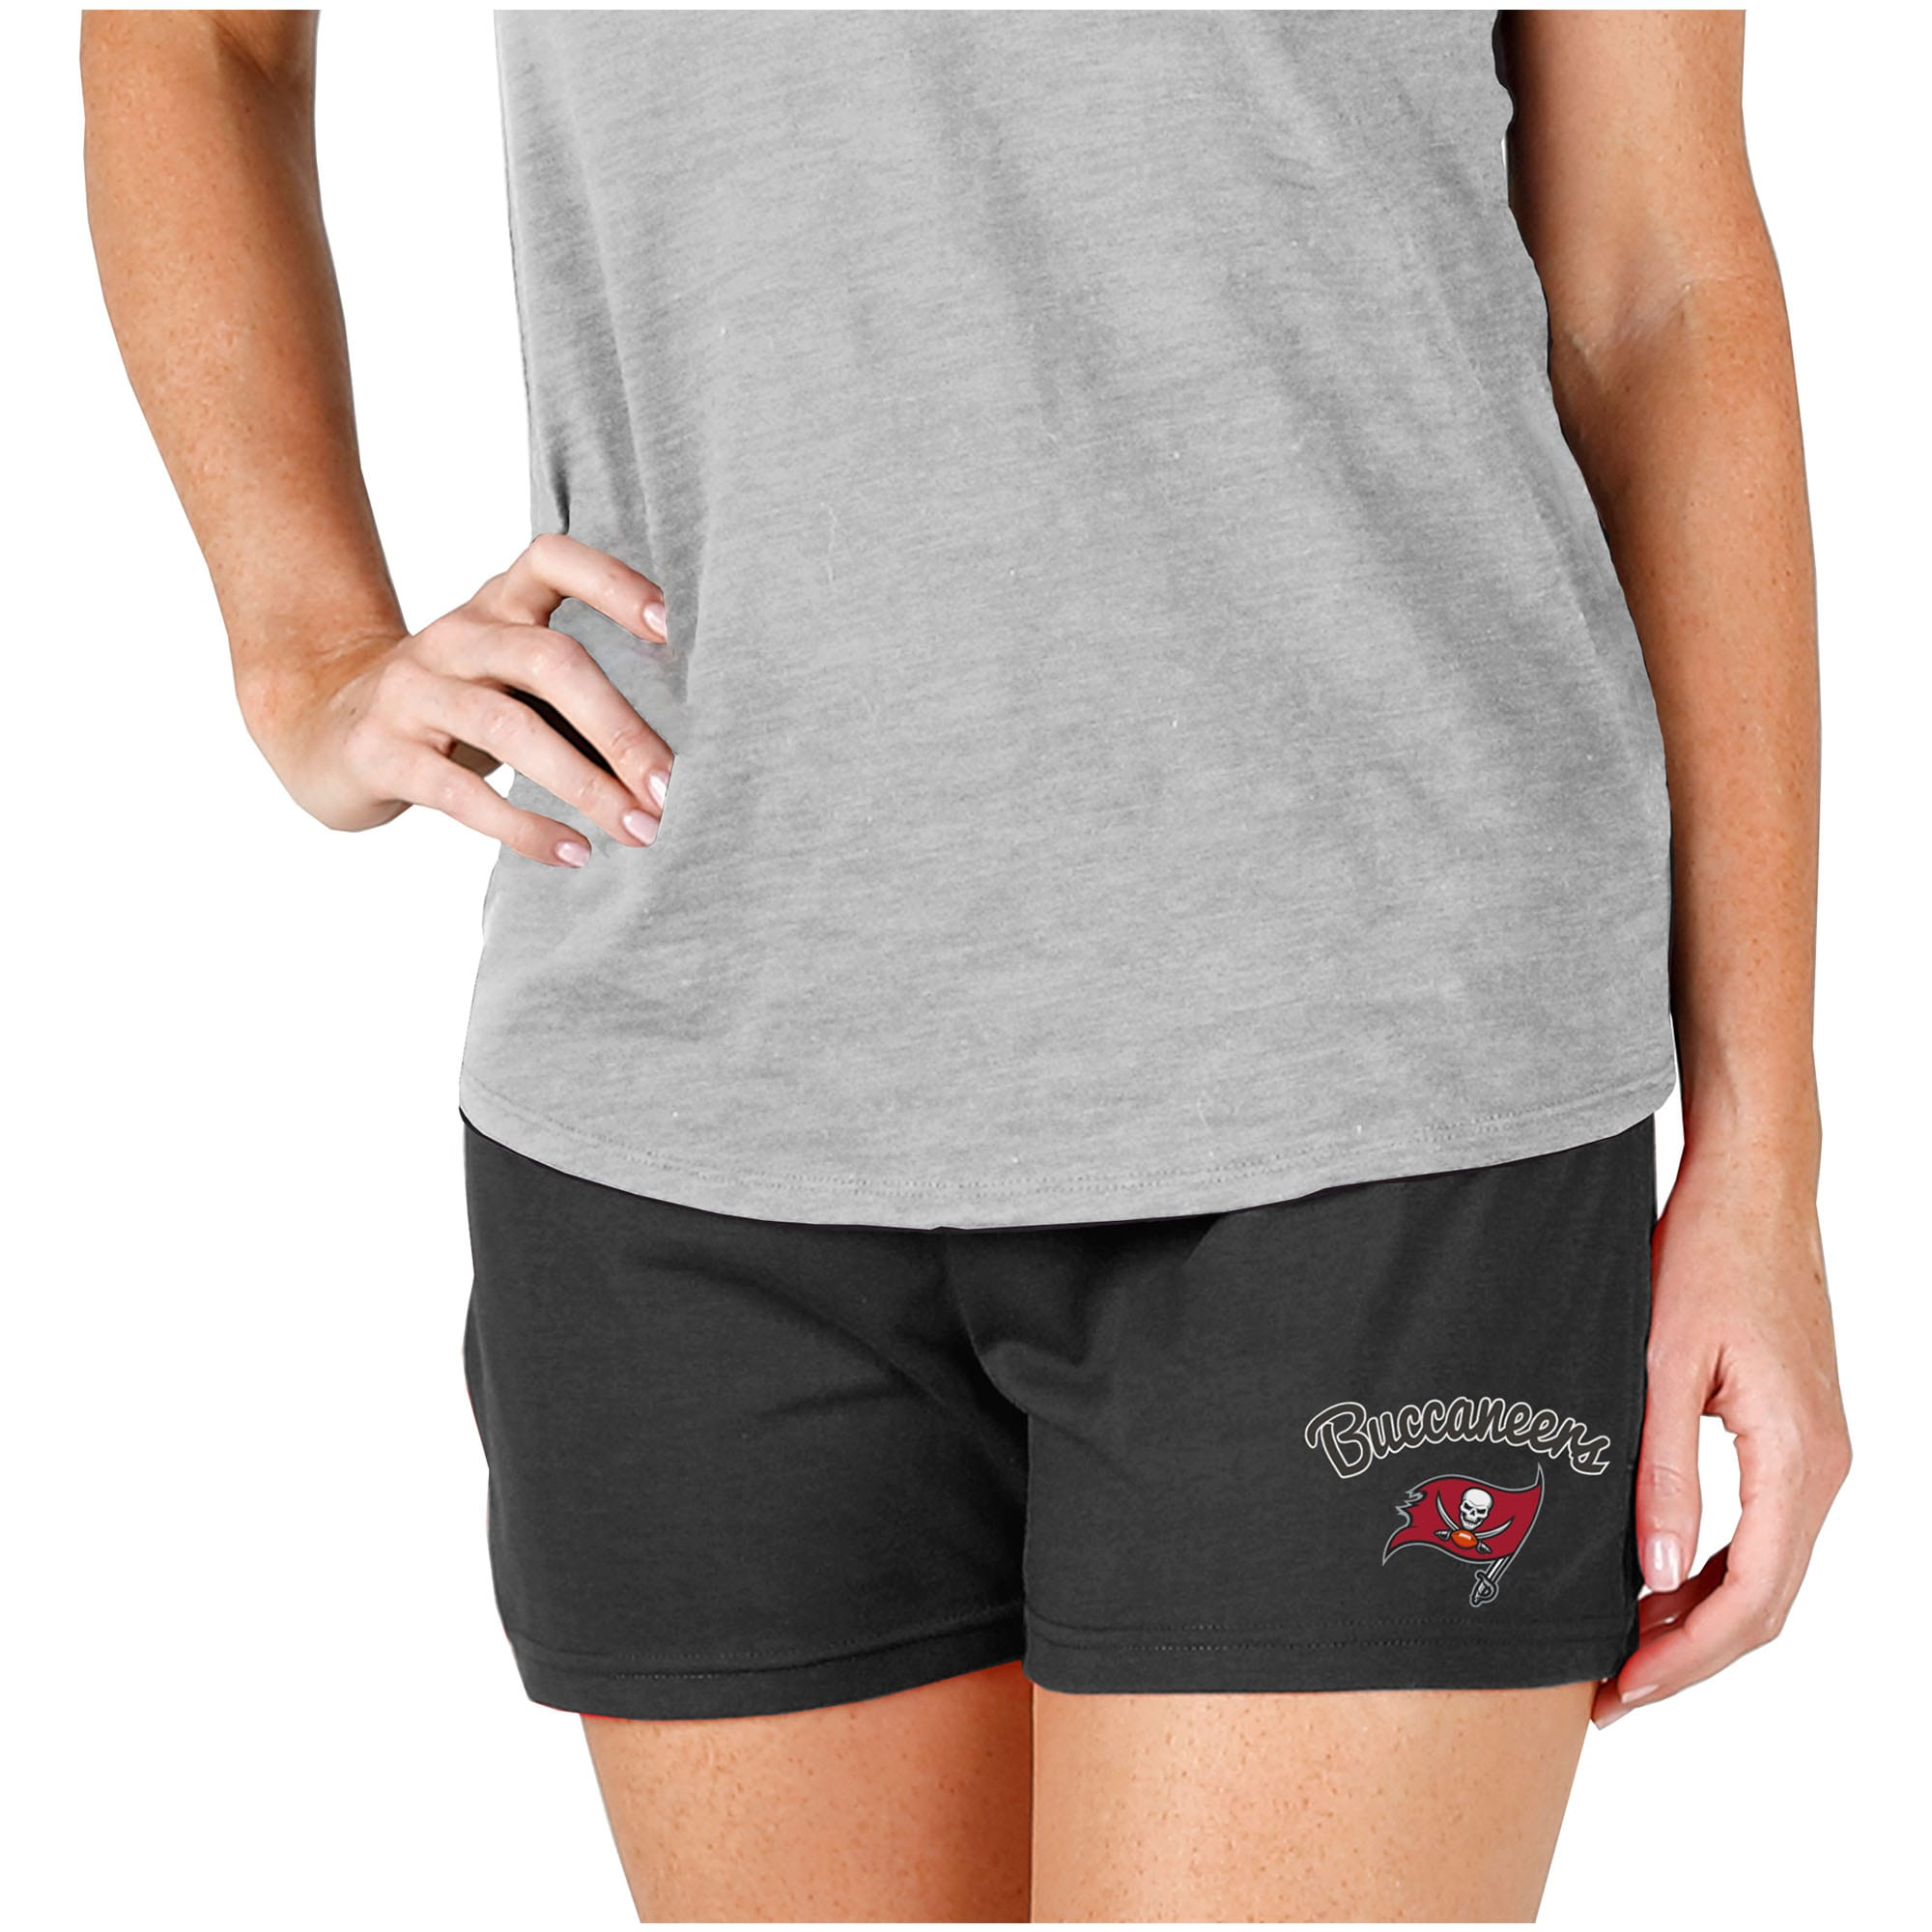 Tampa Bay Buccaneers Concepts Sport Women's Knit Shorts - Charcoal